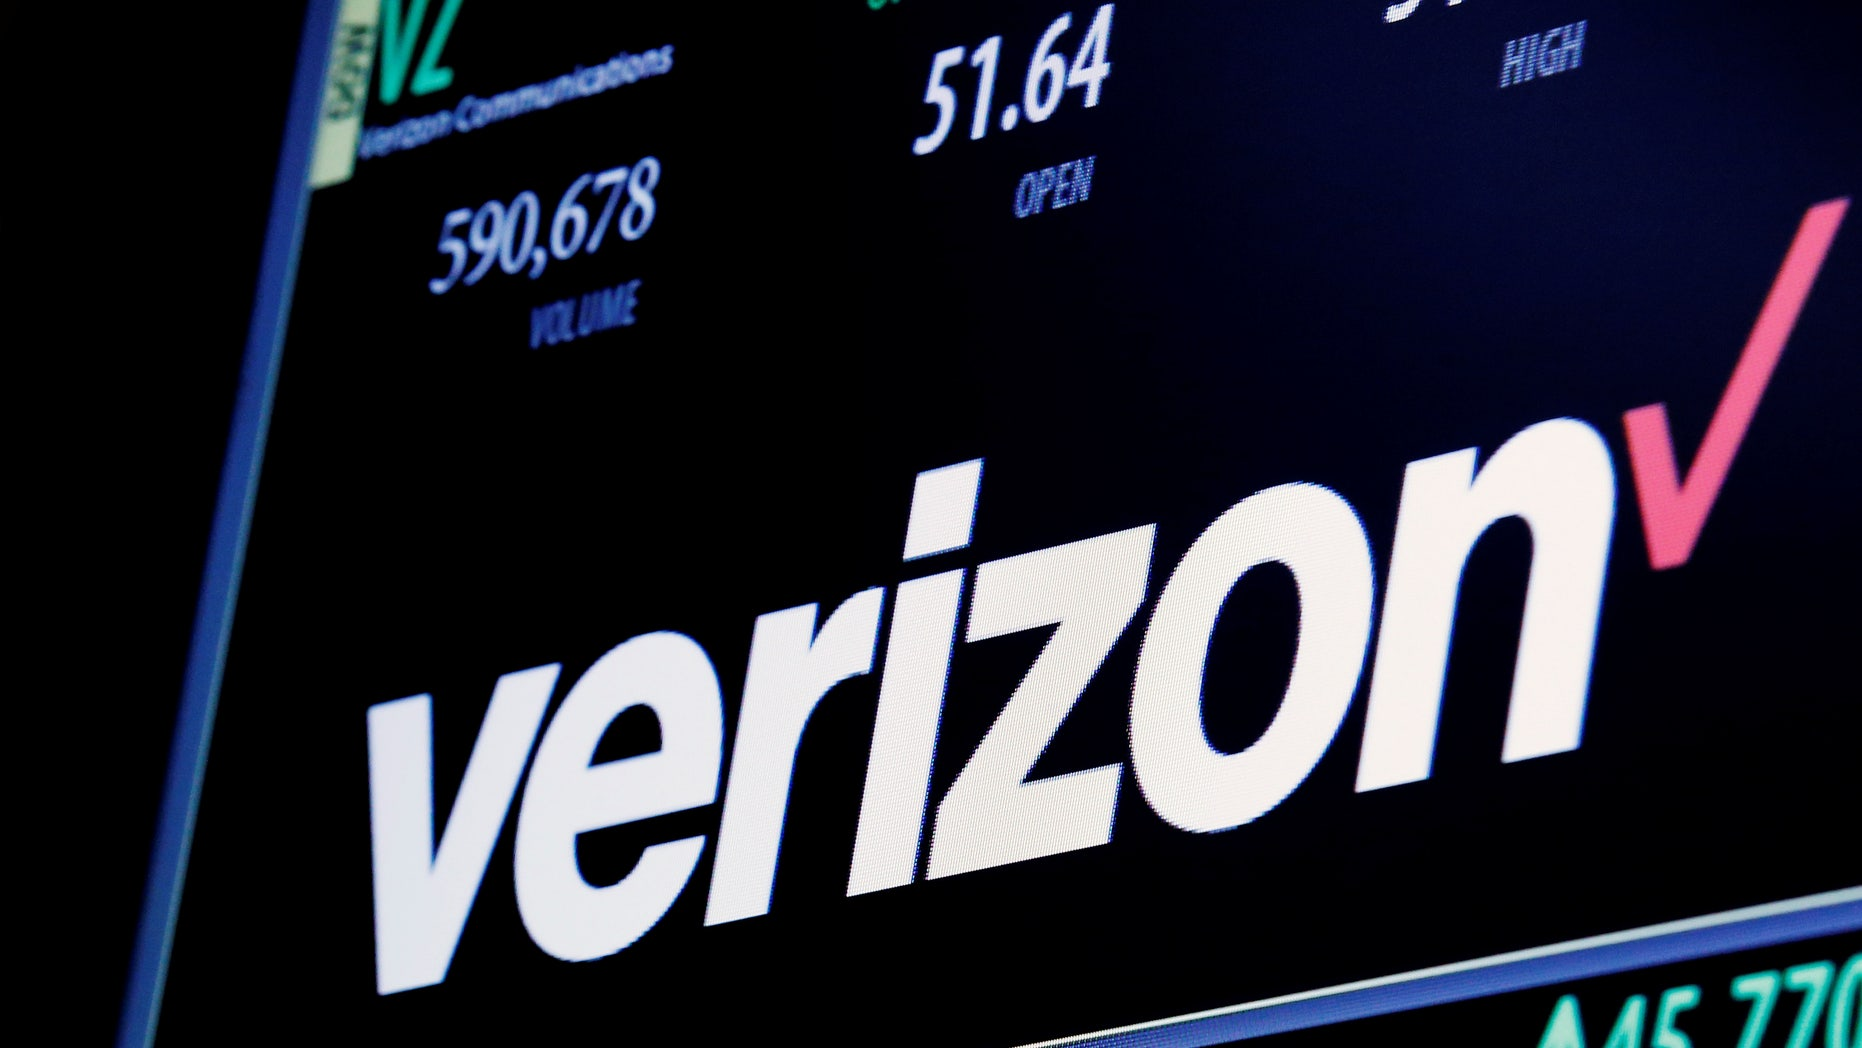 The ticker and trading information for Verizon is displayed on June 9, 2016.